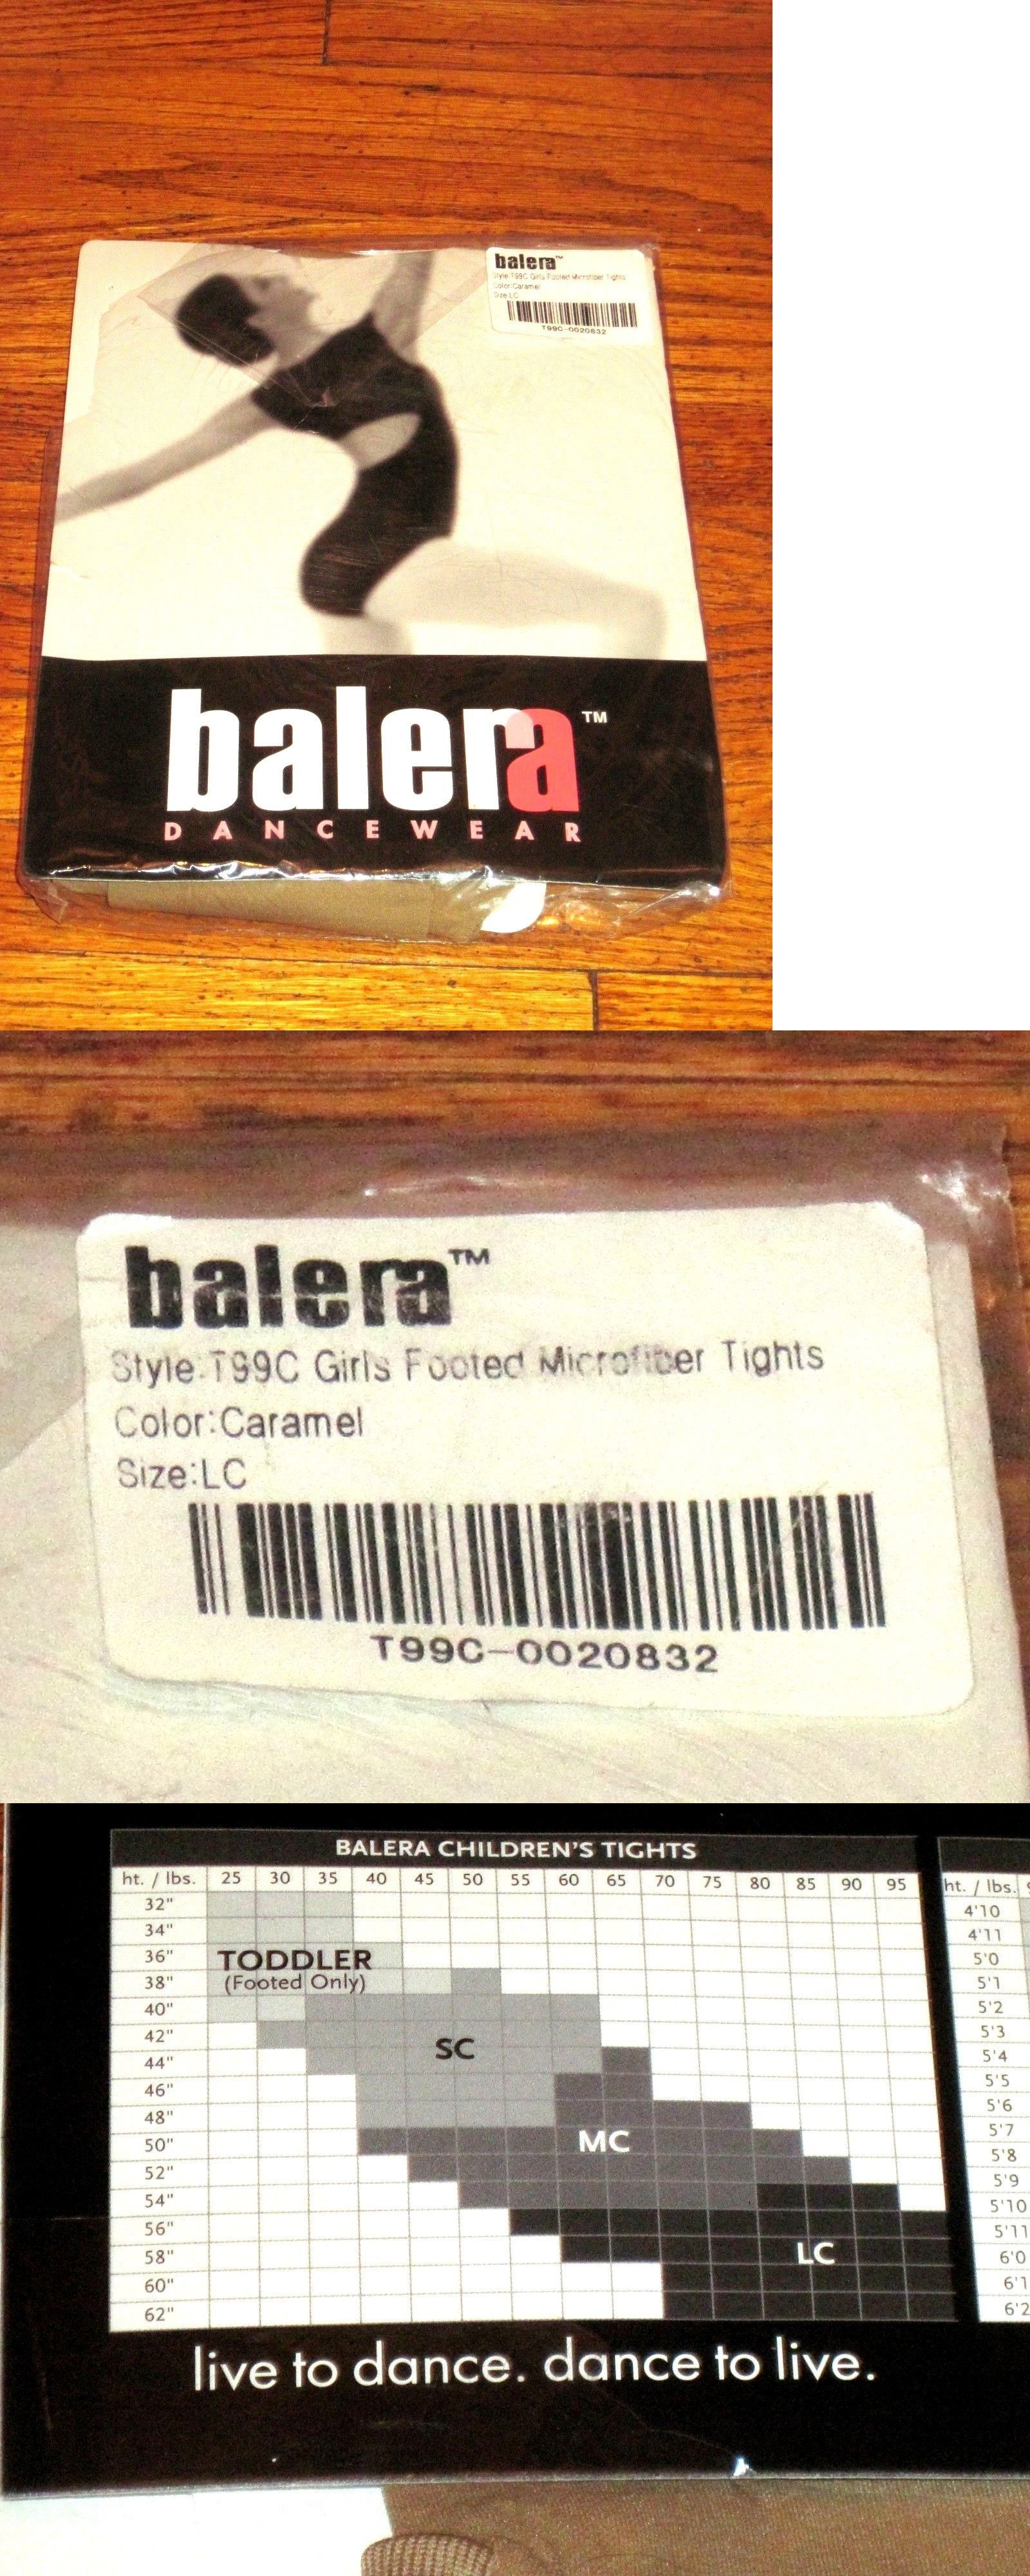 37bb6c8fe Leggings and Tights 152353  Balera Girls Footed Microfiber Lt Caramel Dance  Tights Size Lc Large Child Nwt -  BUY IT NOW ONLY   10.6 on  eBay  leggings  ...